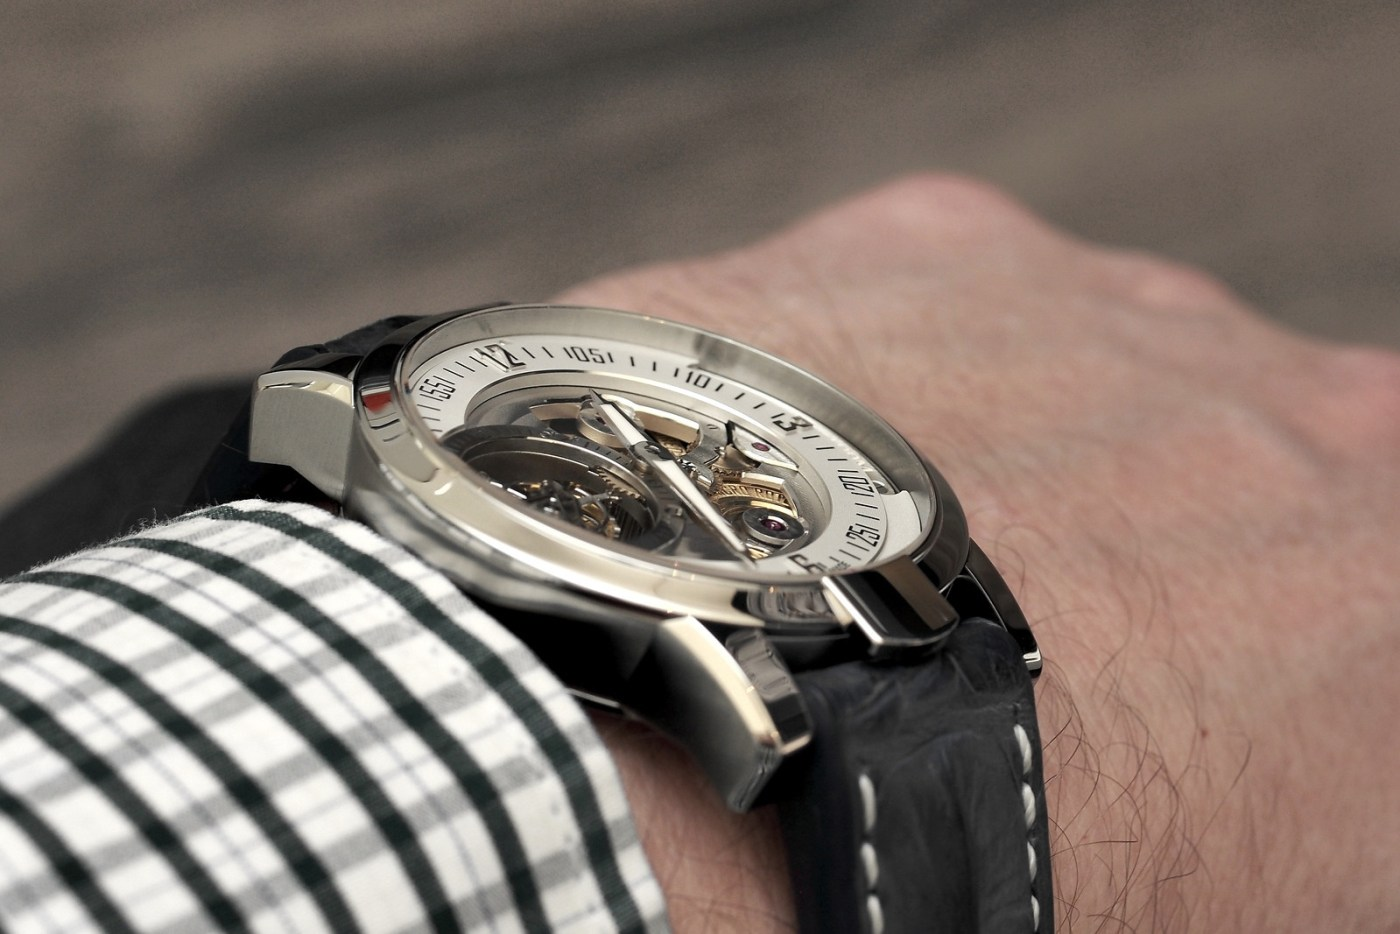 Armin Strom Tourbillon Gravity Water